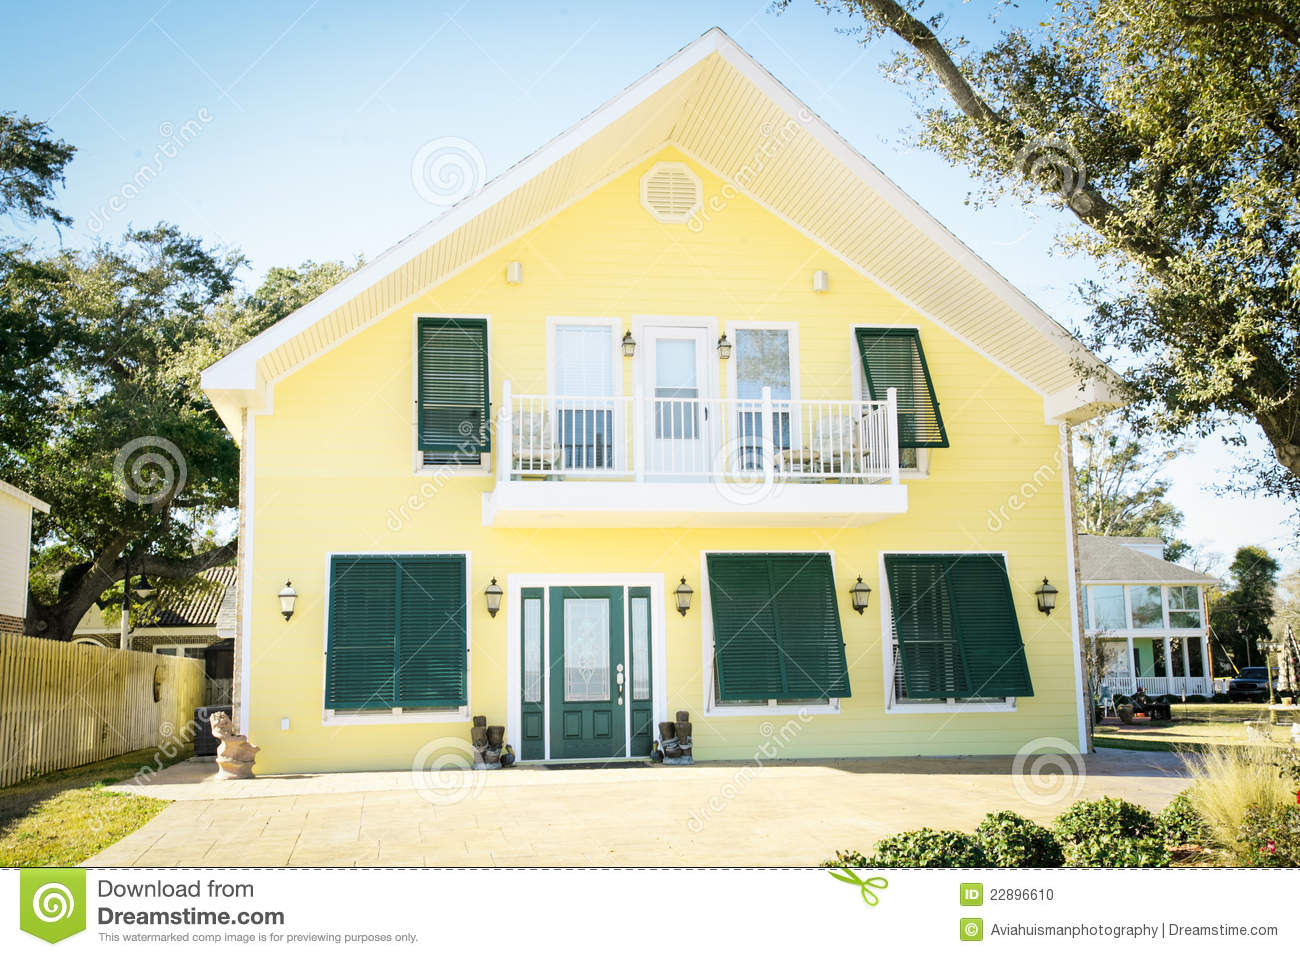 Modern southern style american home with white trim shutters and a balcony